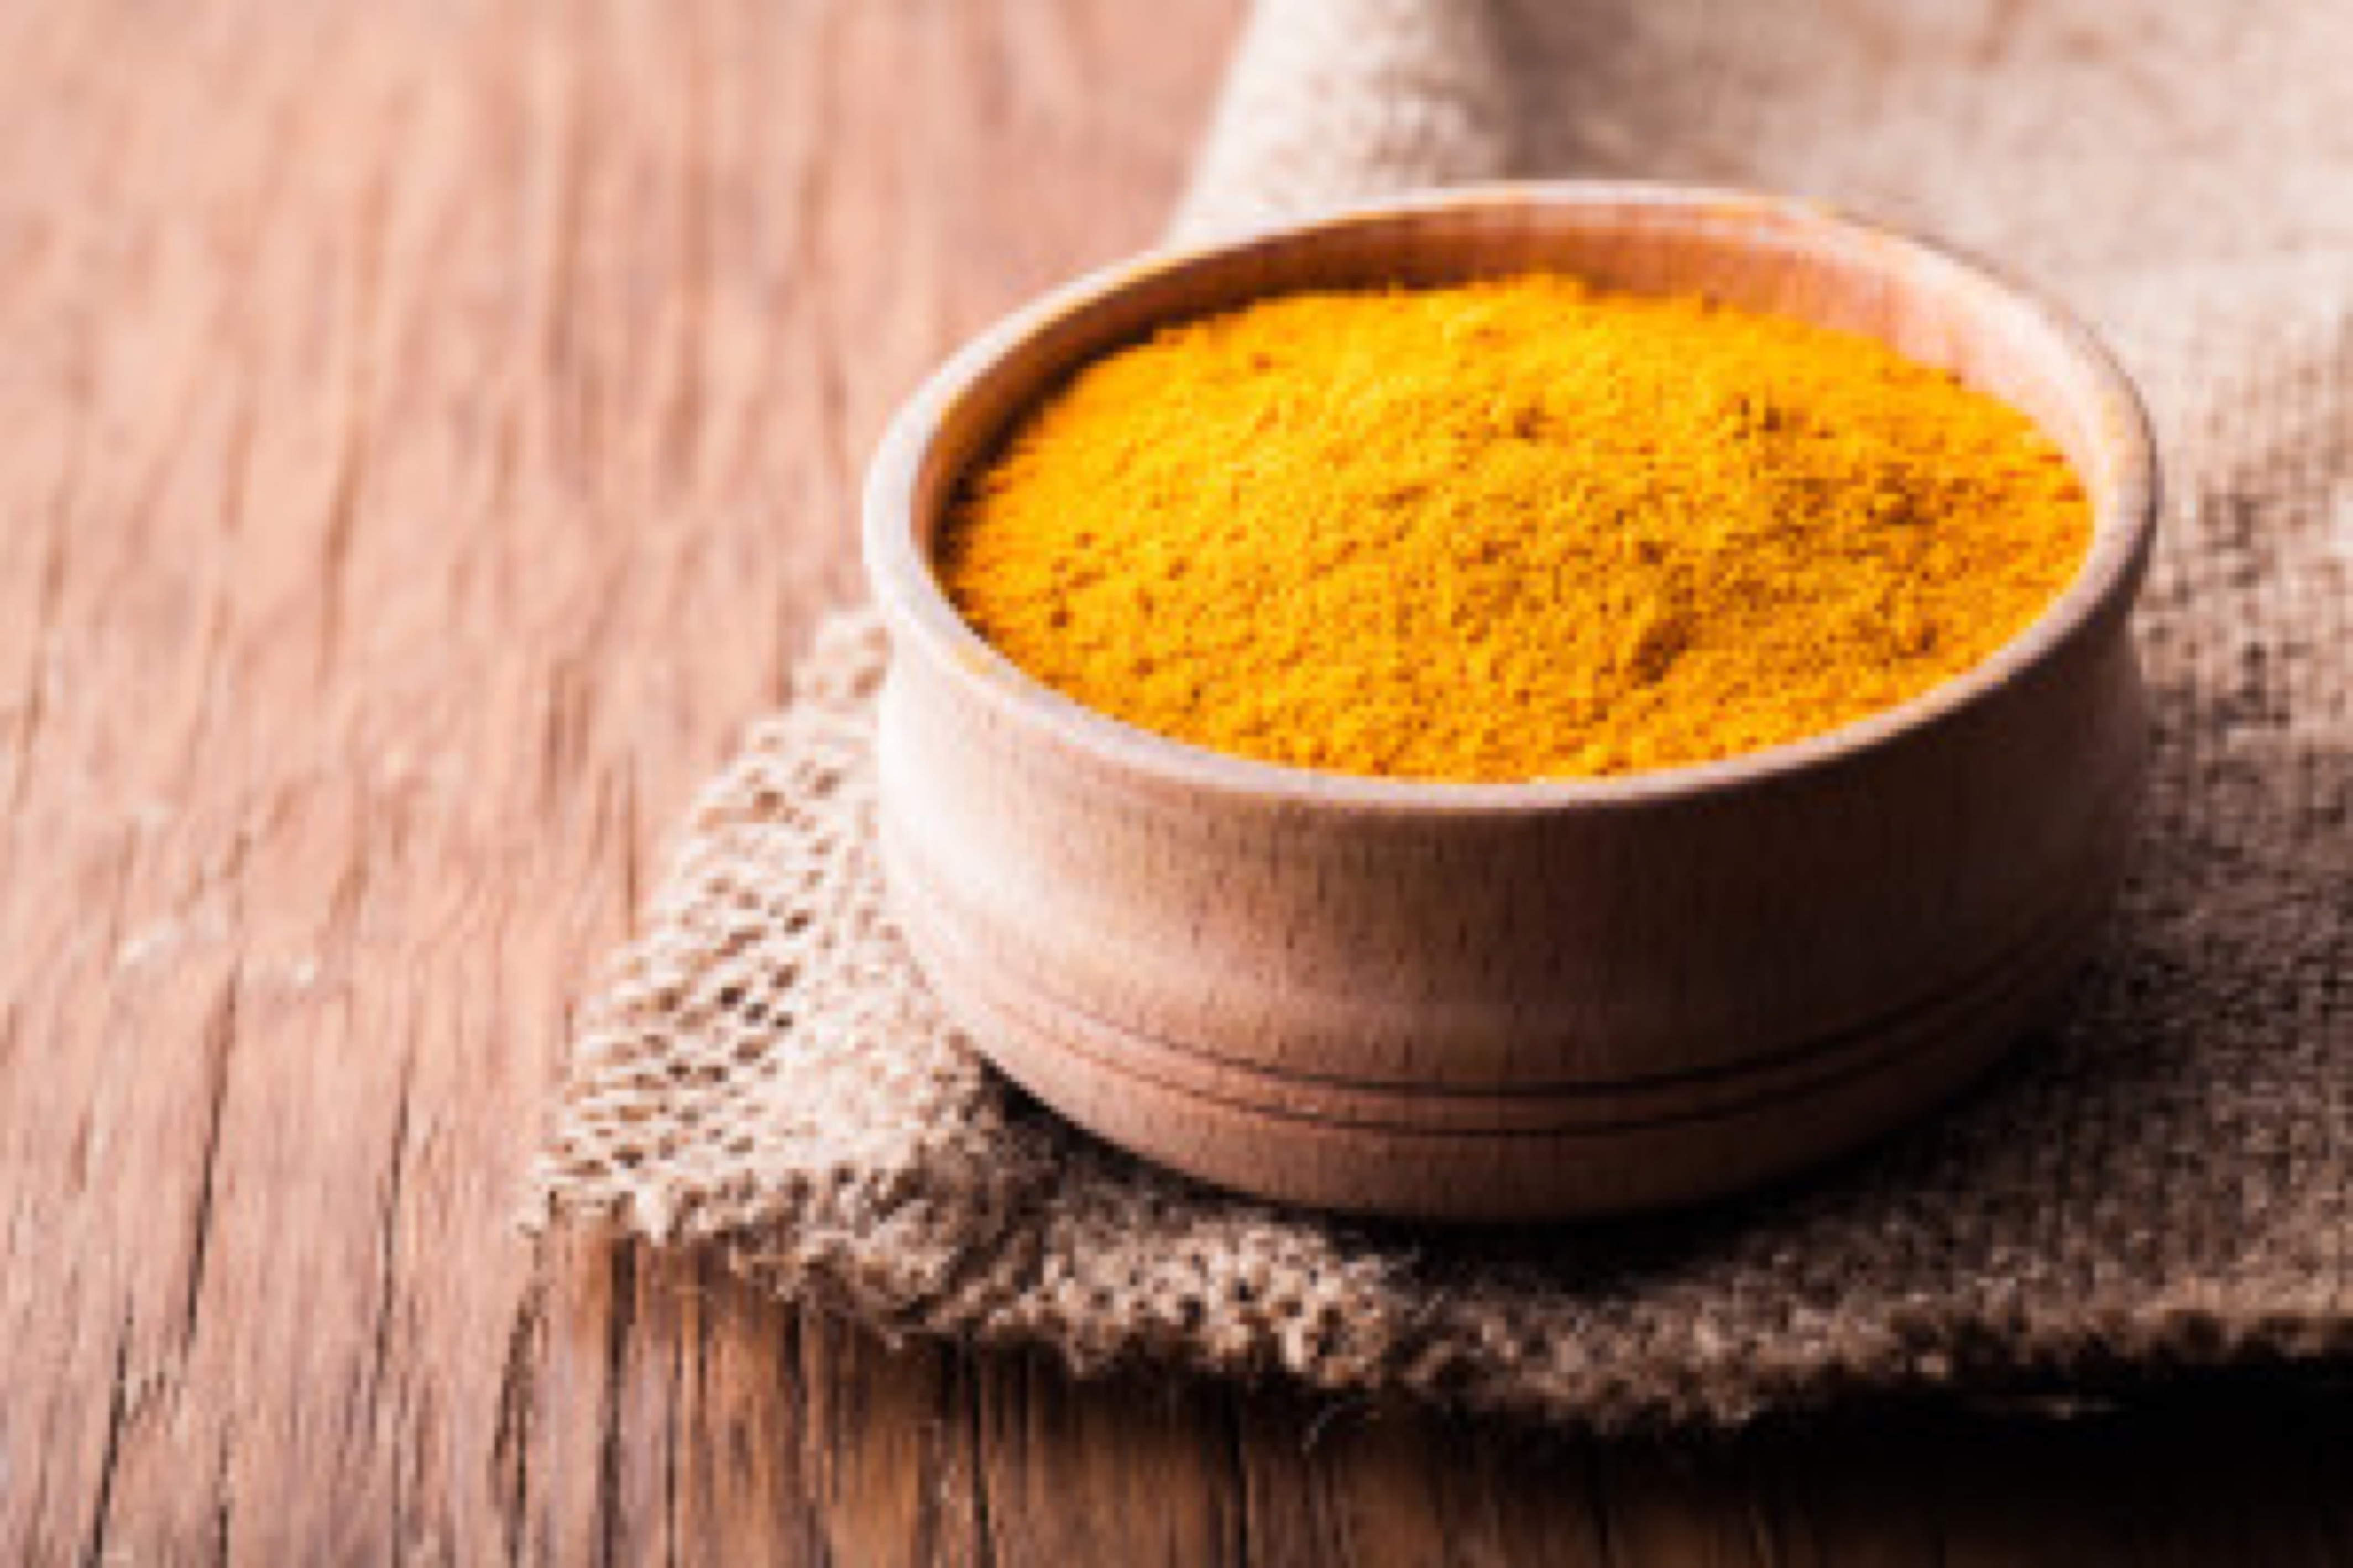 dry spice turmeric in a wooden bowl close-up on a vintage background